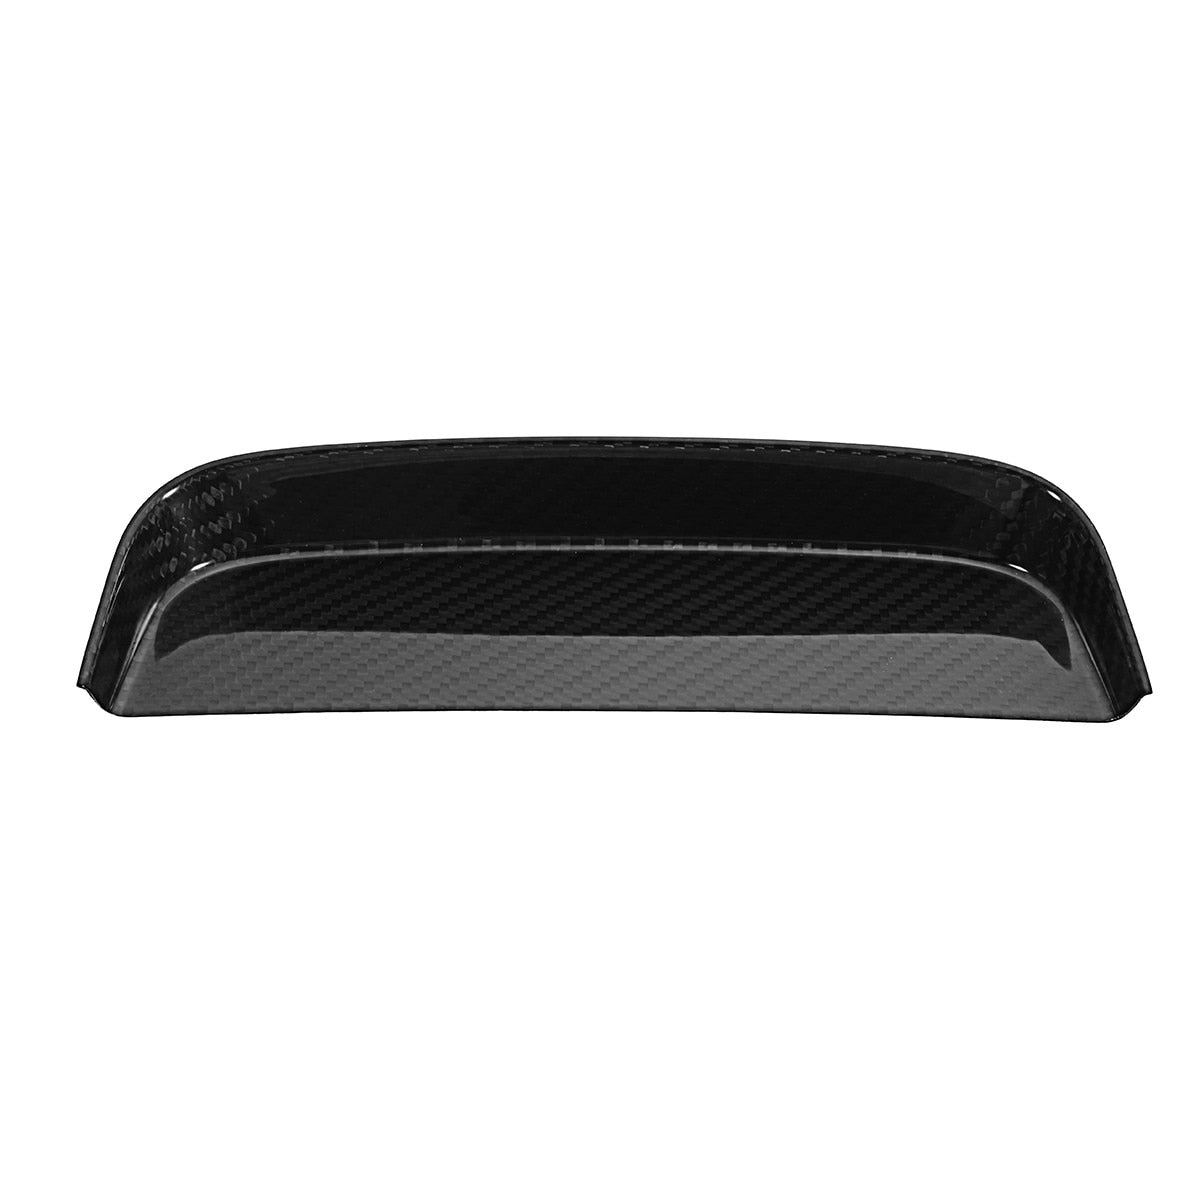 Carbon Fiber Coin Tray For Ford Mustang